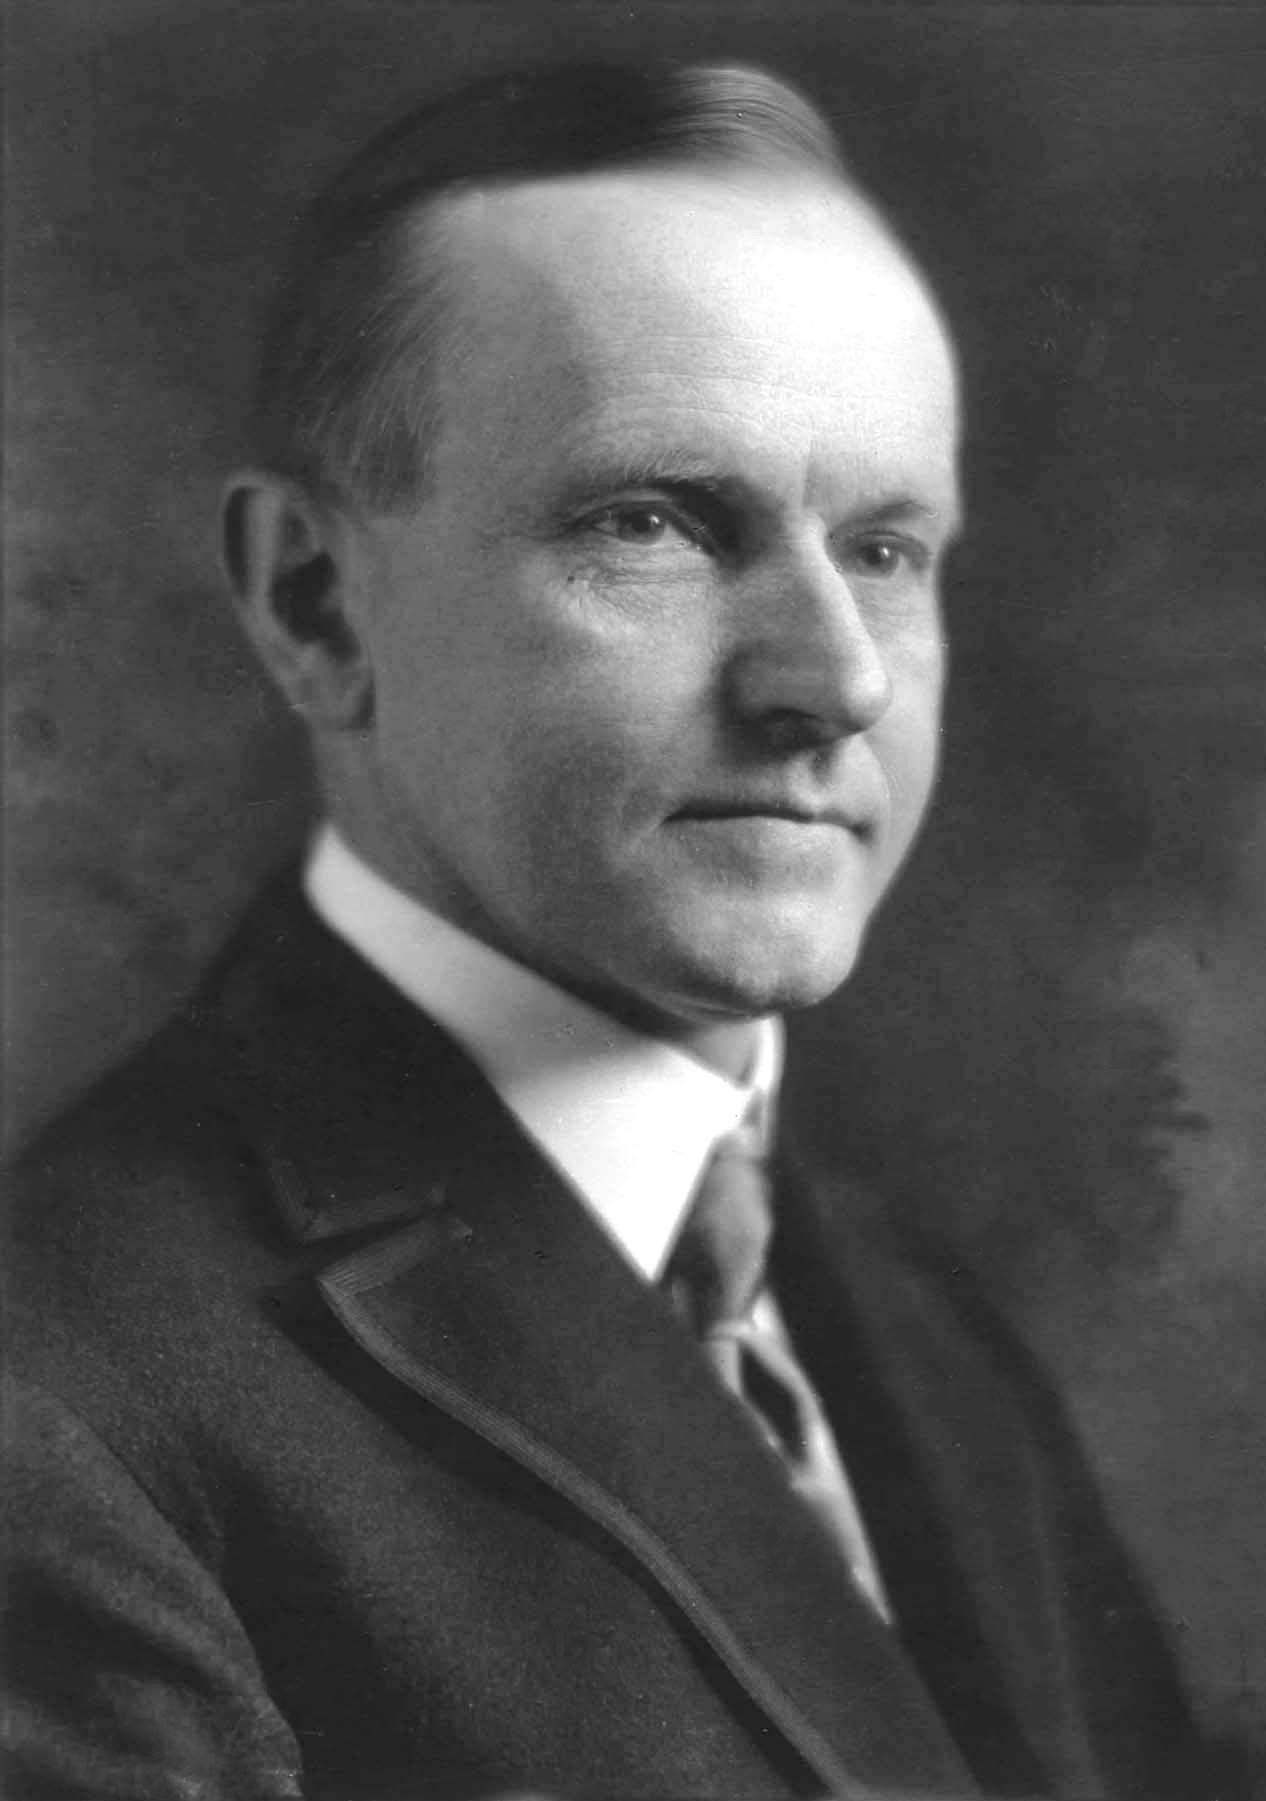 US President Calvin Coolidge in 1923; picture taken by Armenian-American photographer John Garo (1875-1939)